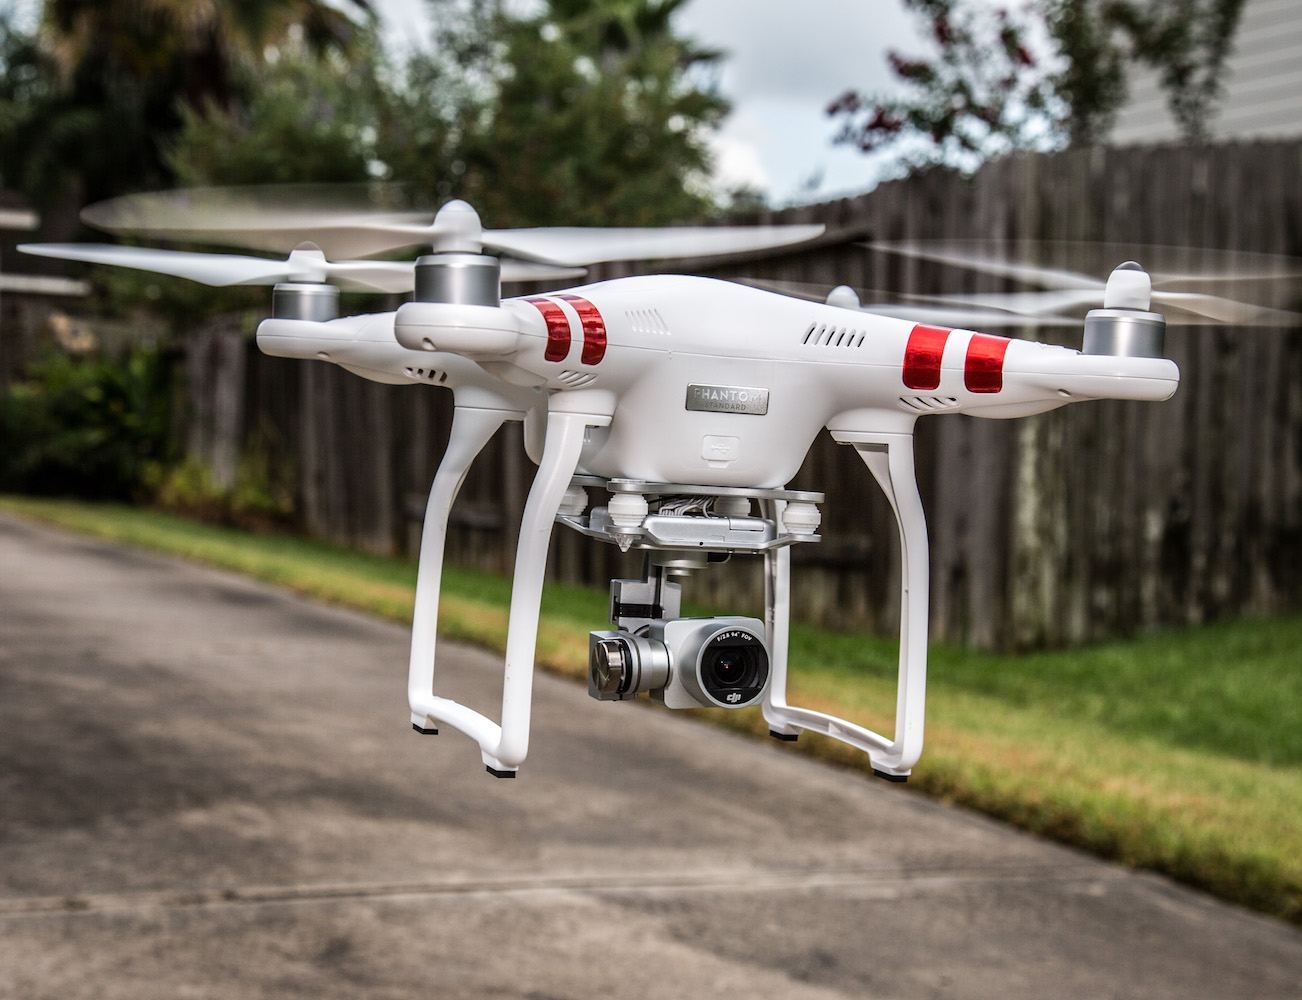 DJI+Phantom+3+%26%238211%3B+Ready+To+Fly+With+Built-In+Camera%E2%80%8E